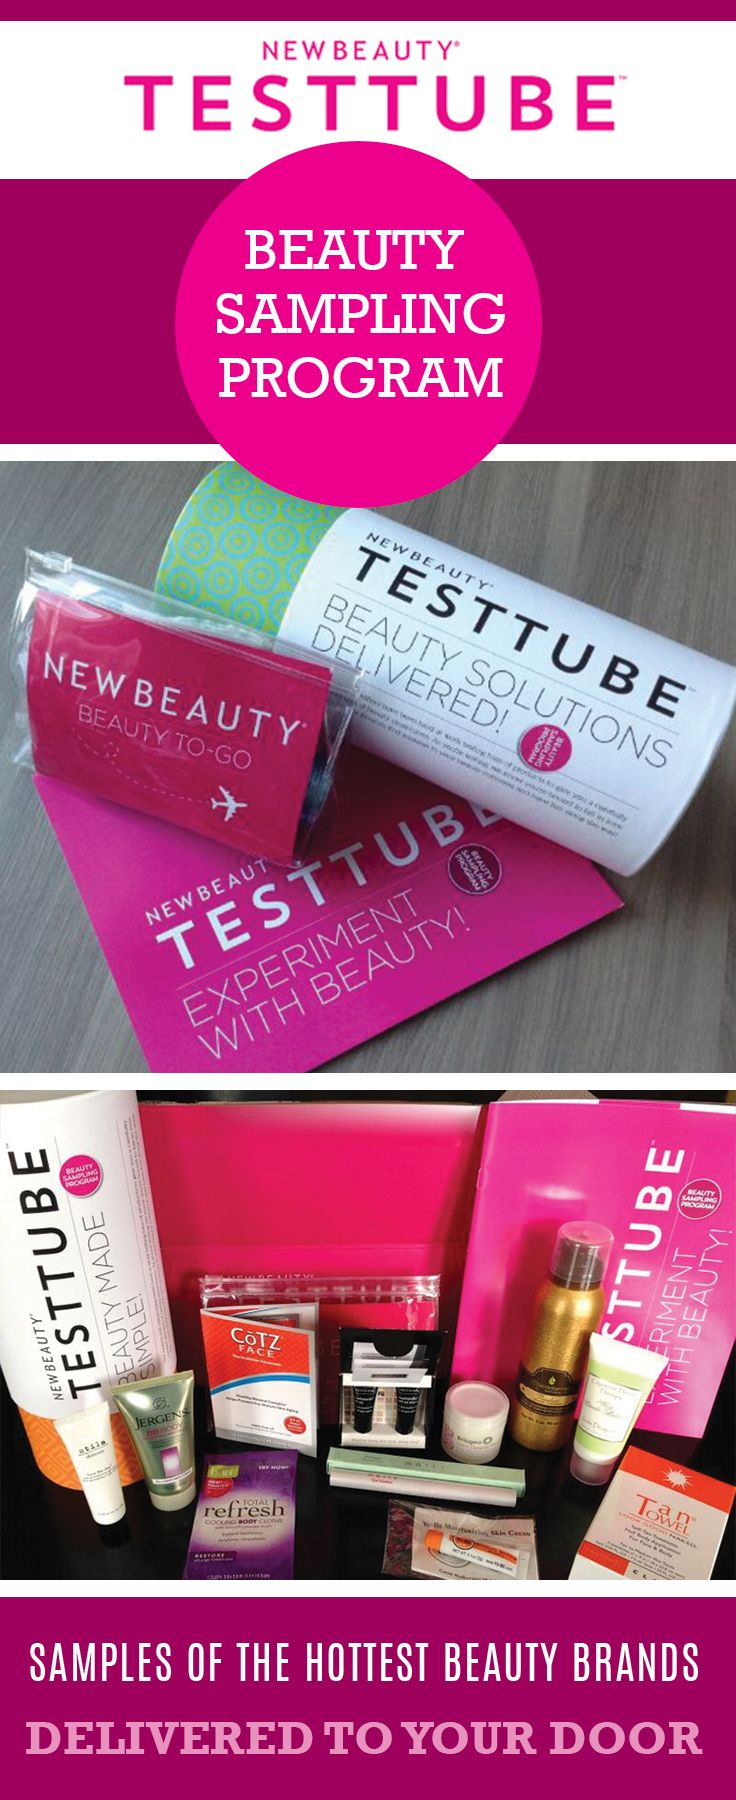 Receive Samples of the hottest new beauty products with